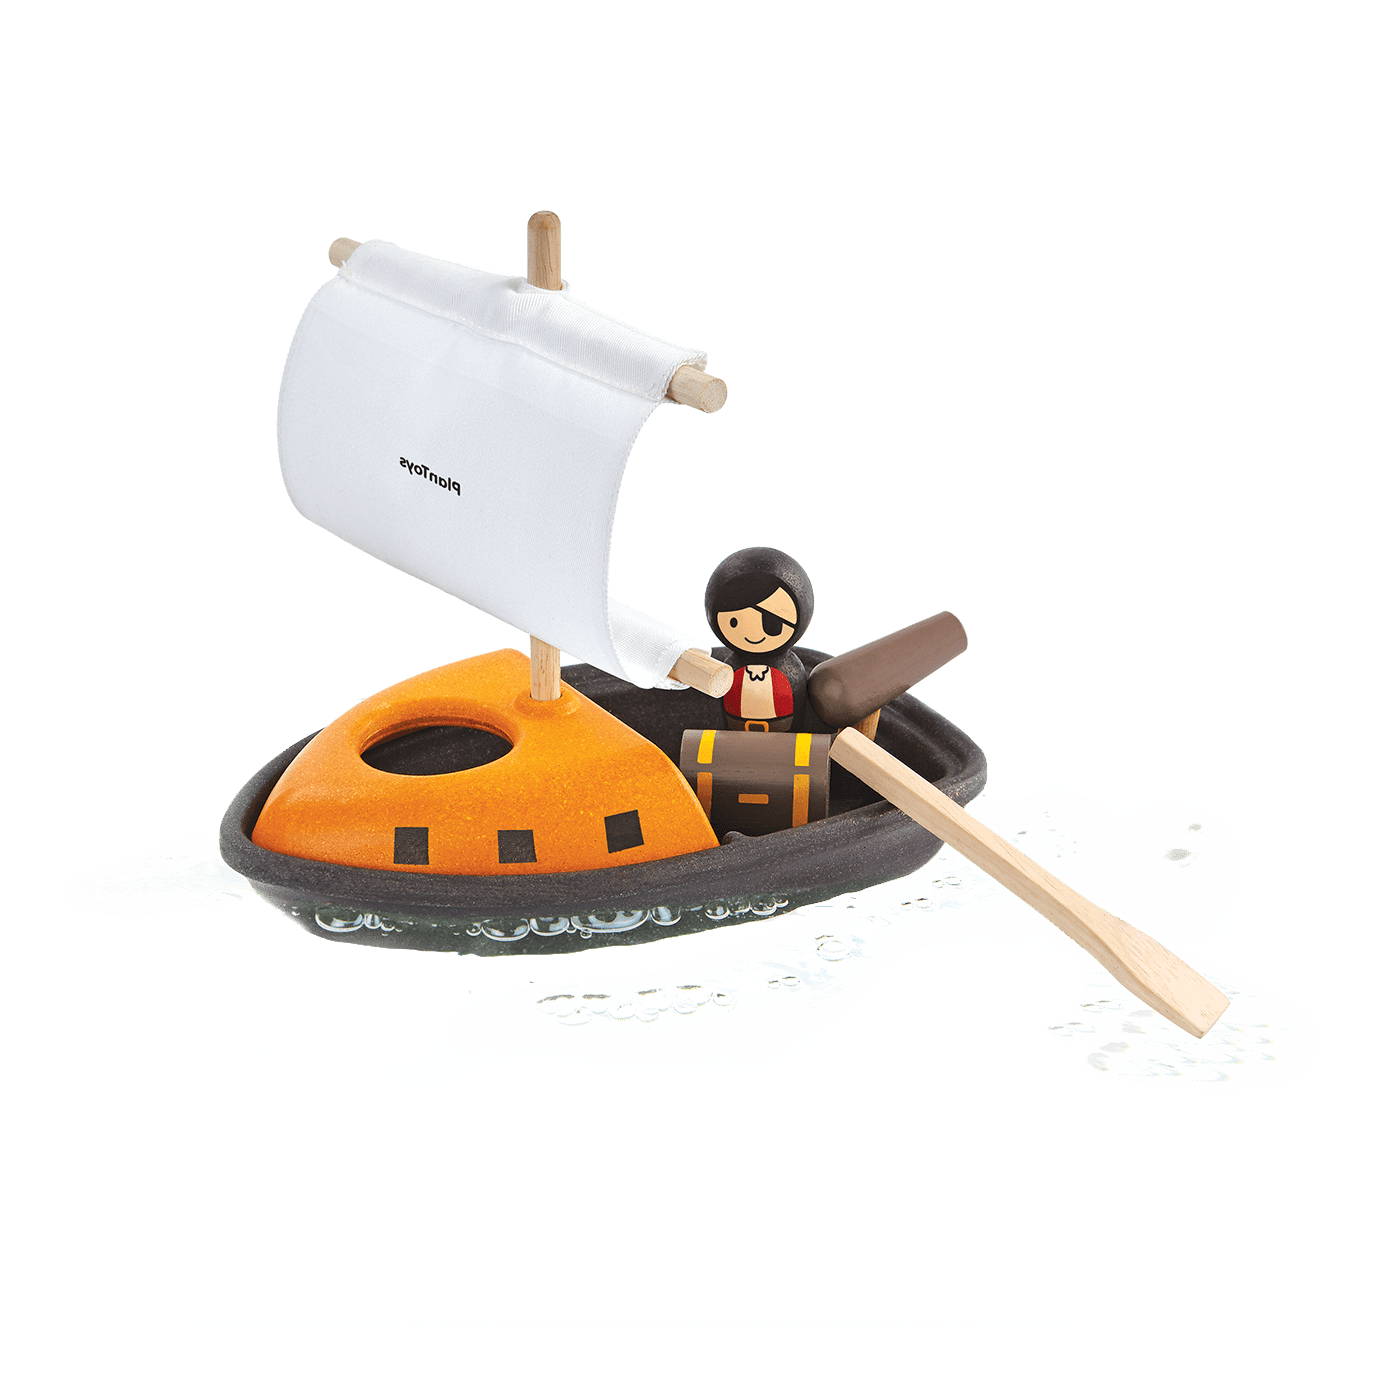 5707_PlanToys_PIRATE_BOAT_Water_Play_Imagination_Language_and_Communications_Explore_Fine_Motor_2yrs_Wooden_toys_Education_toys_Safety_Toys_Non-toxic_0.png